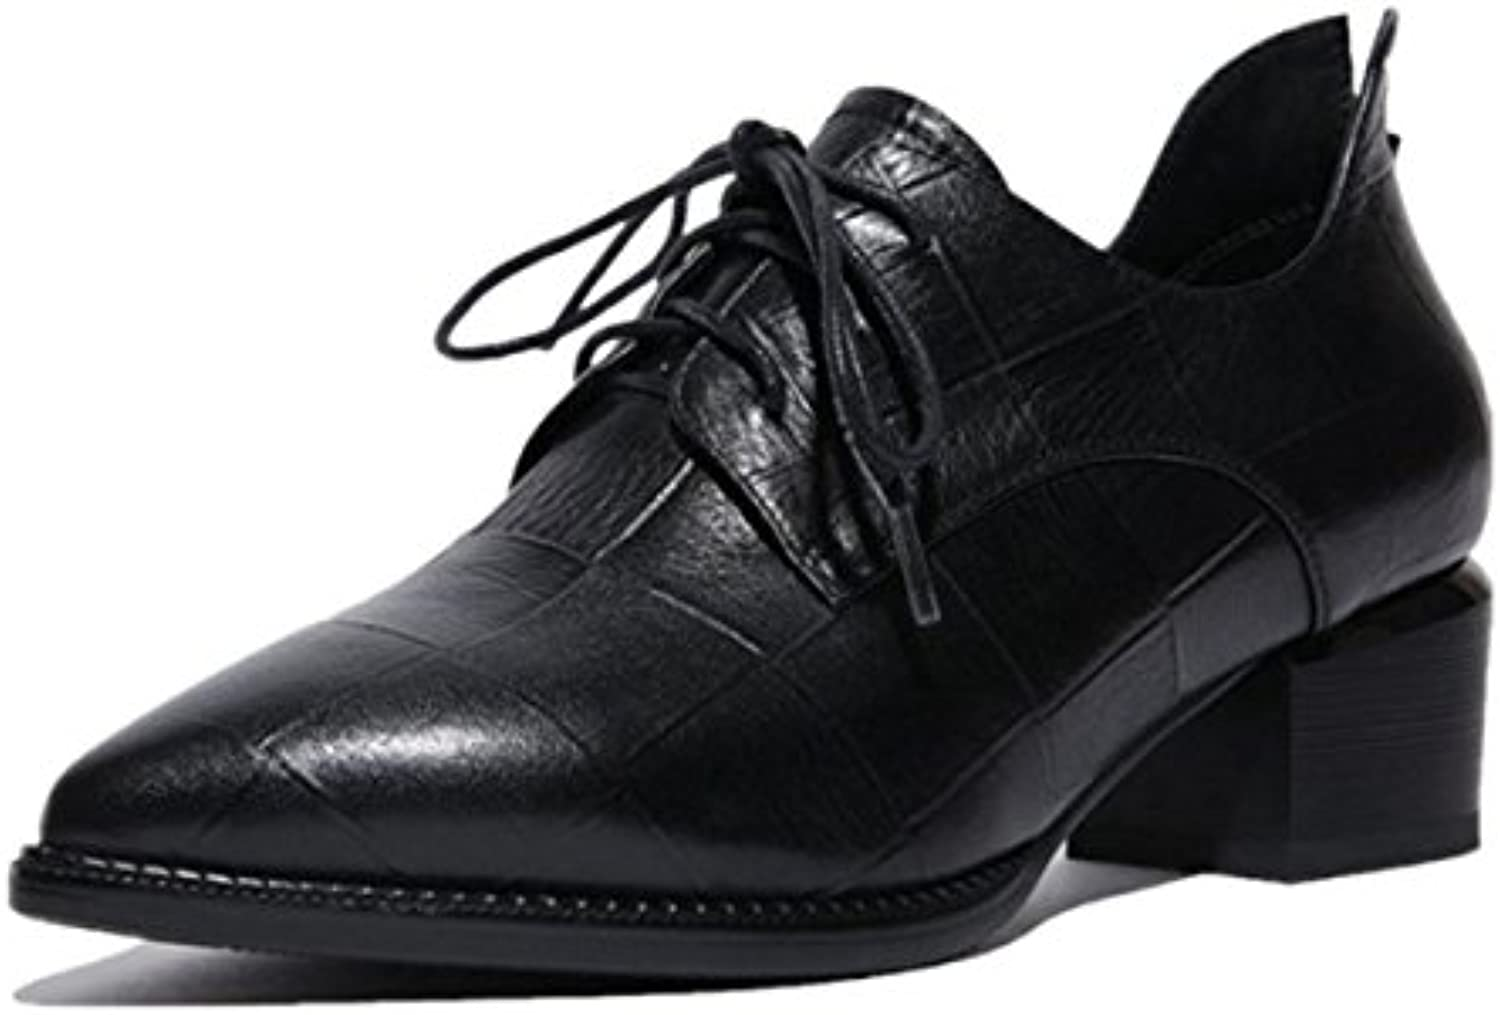 Femmes Dames Pointed Nouveautés Chaussures Chaussures Rough Low Mid Heel Pointed Dames Toe Strappy Genuine Leather Fall Winter...B074Z2TP4XParent 9086ae